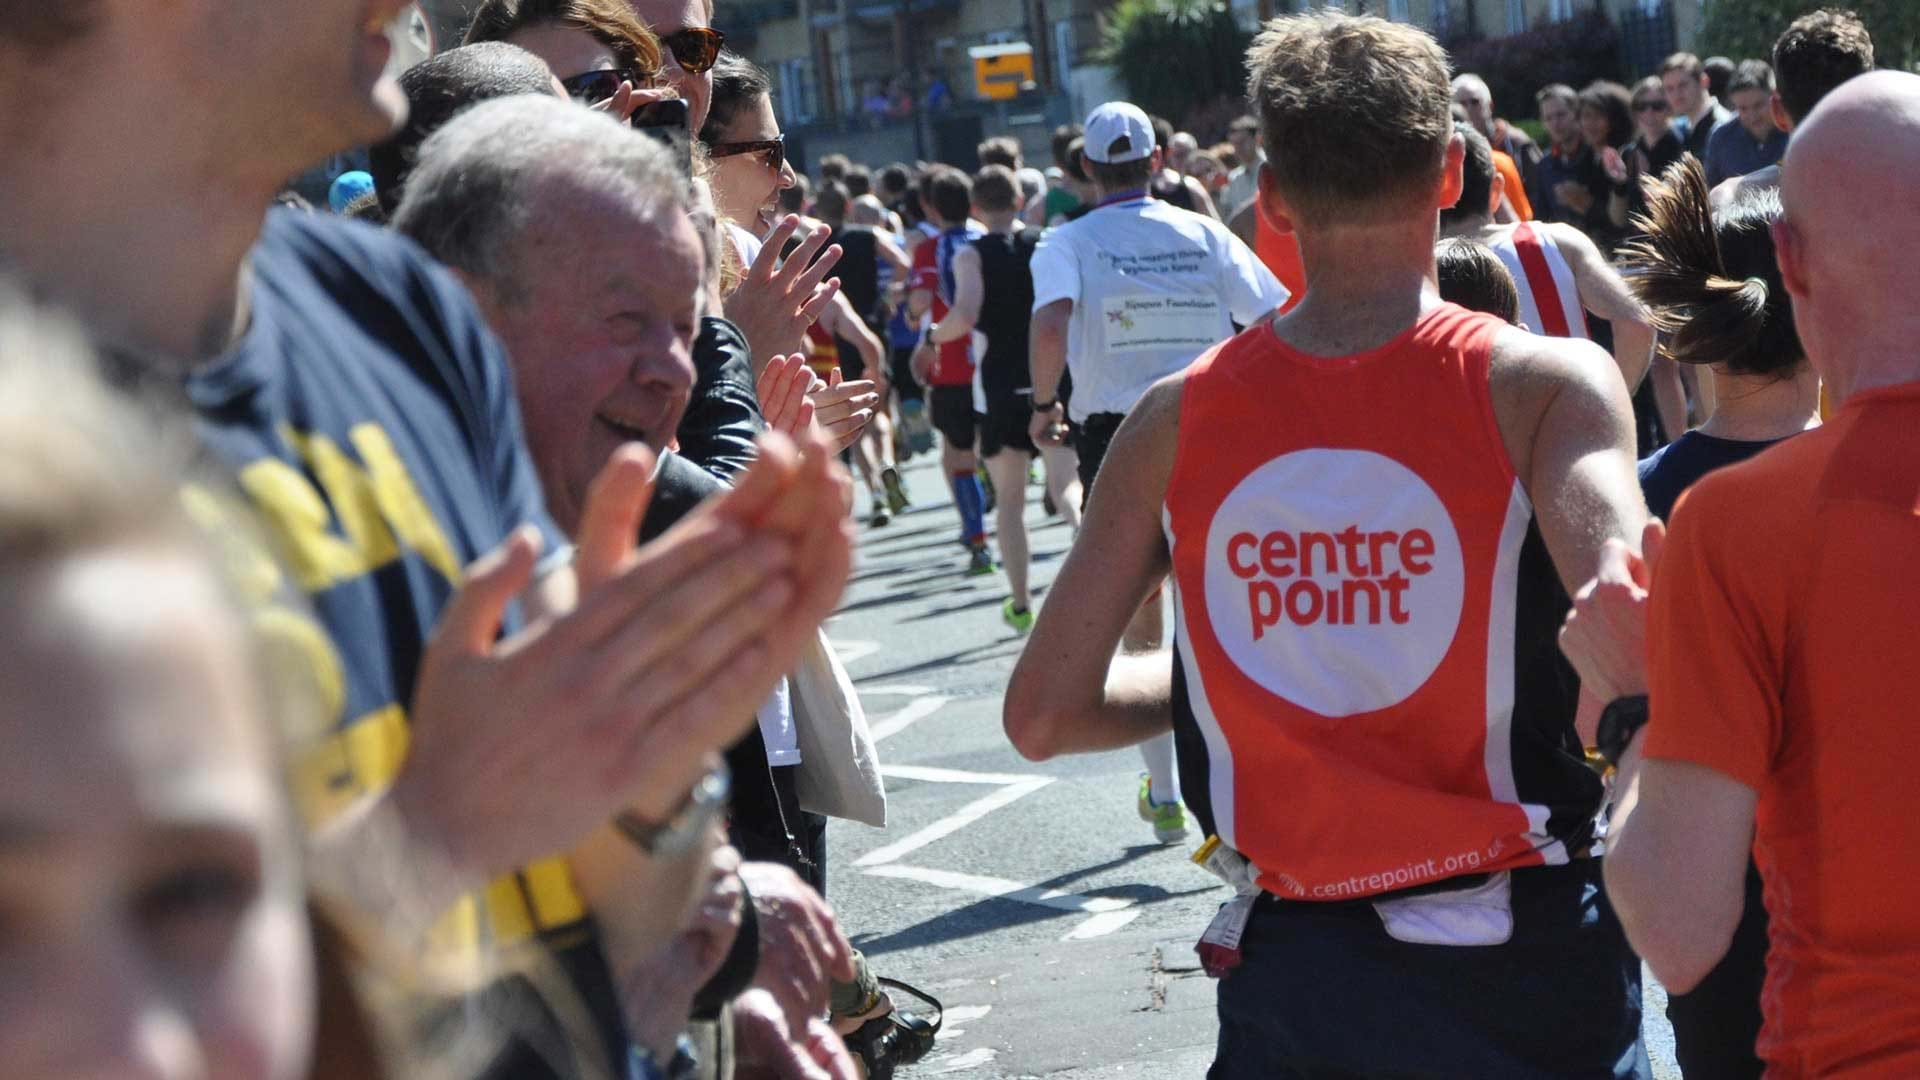 Centrepoint runner from the back